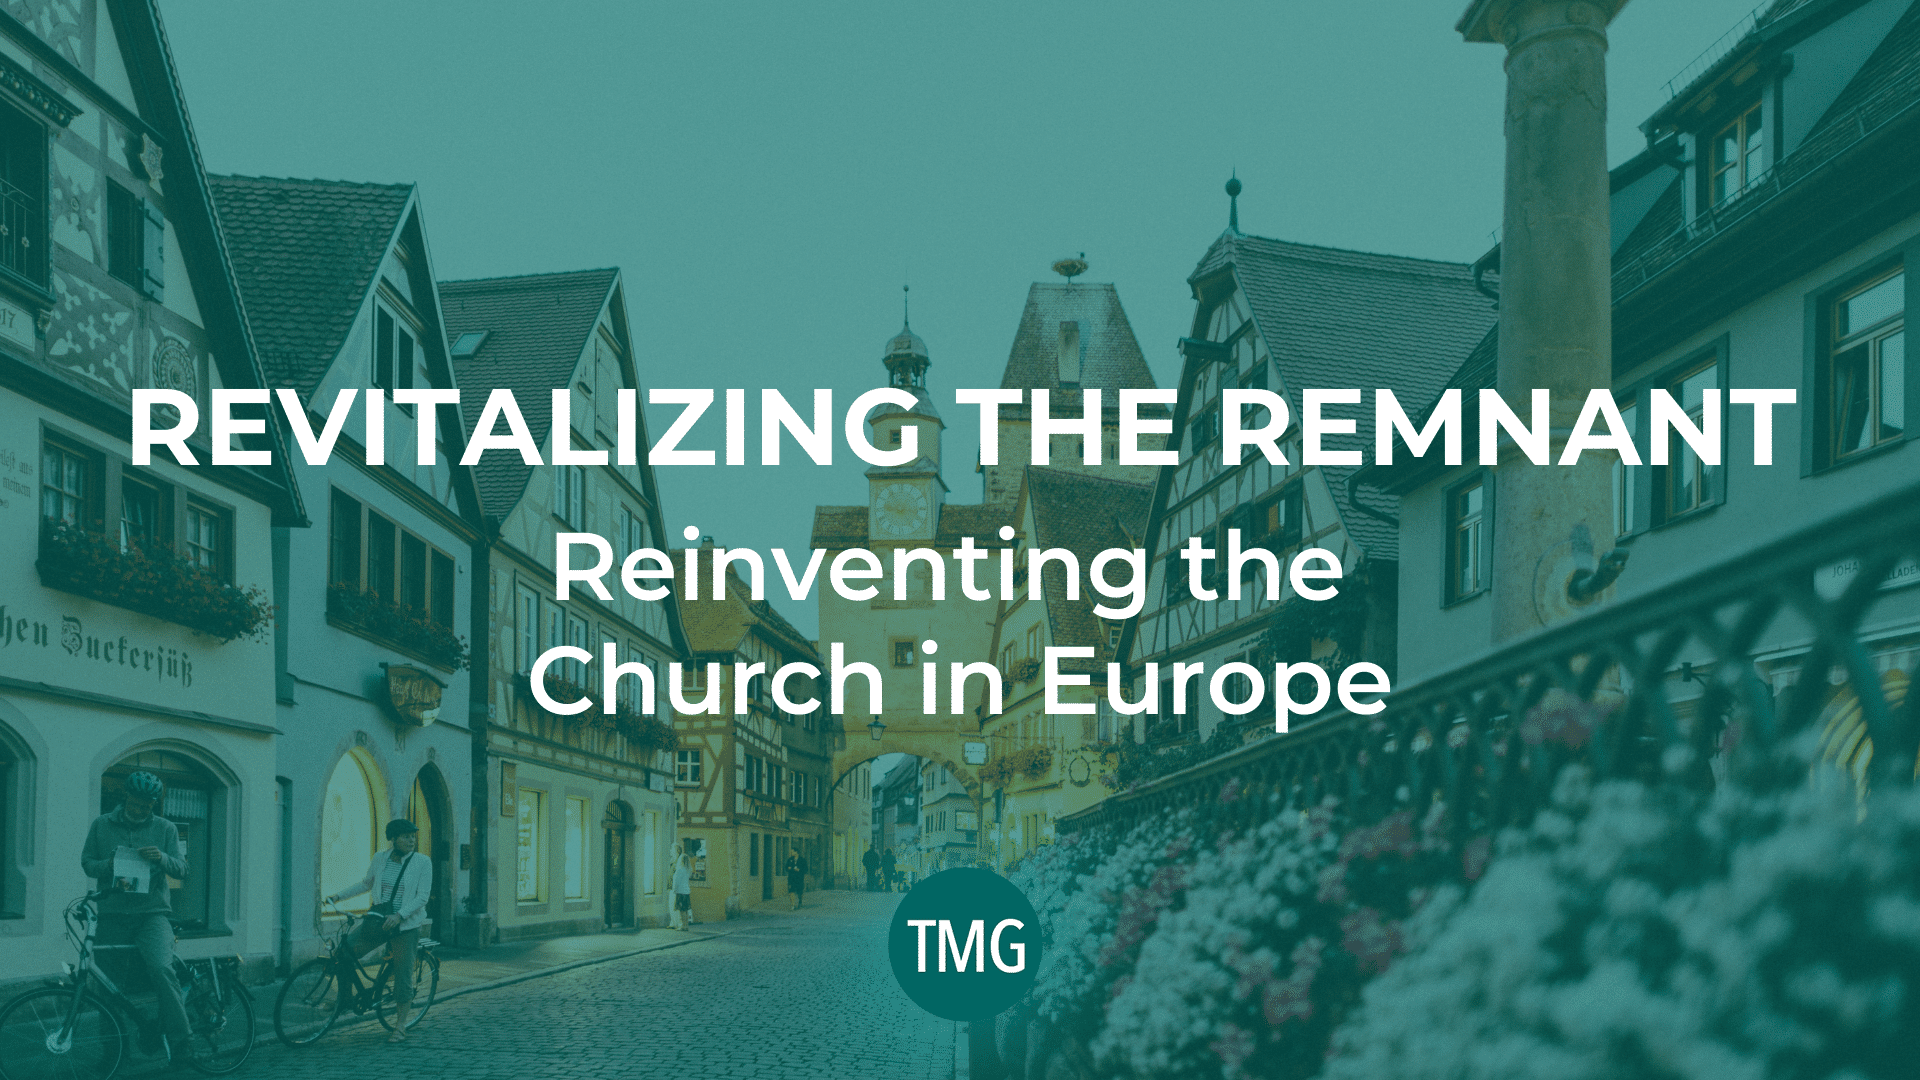 revitalizing-the-remnant-reinventing-the-church-in-europe-header